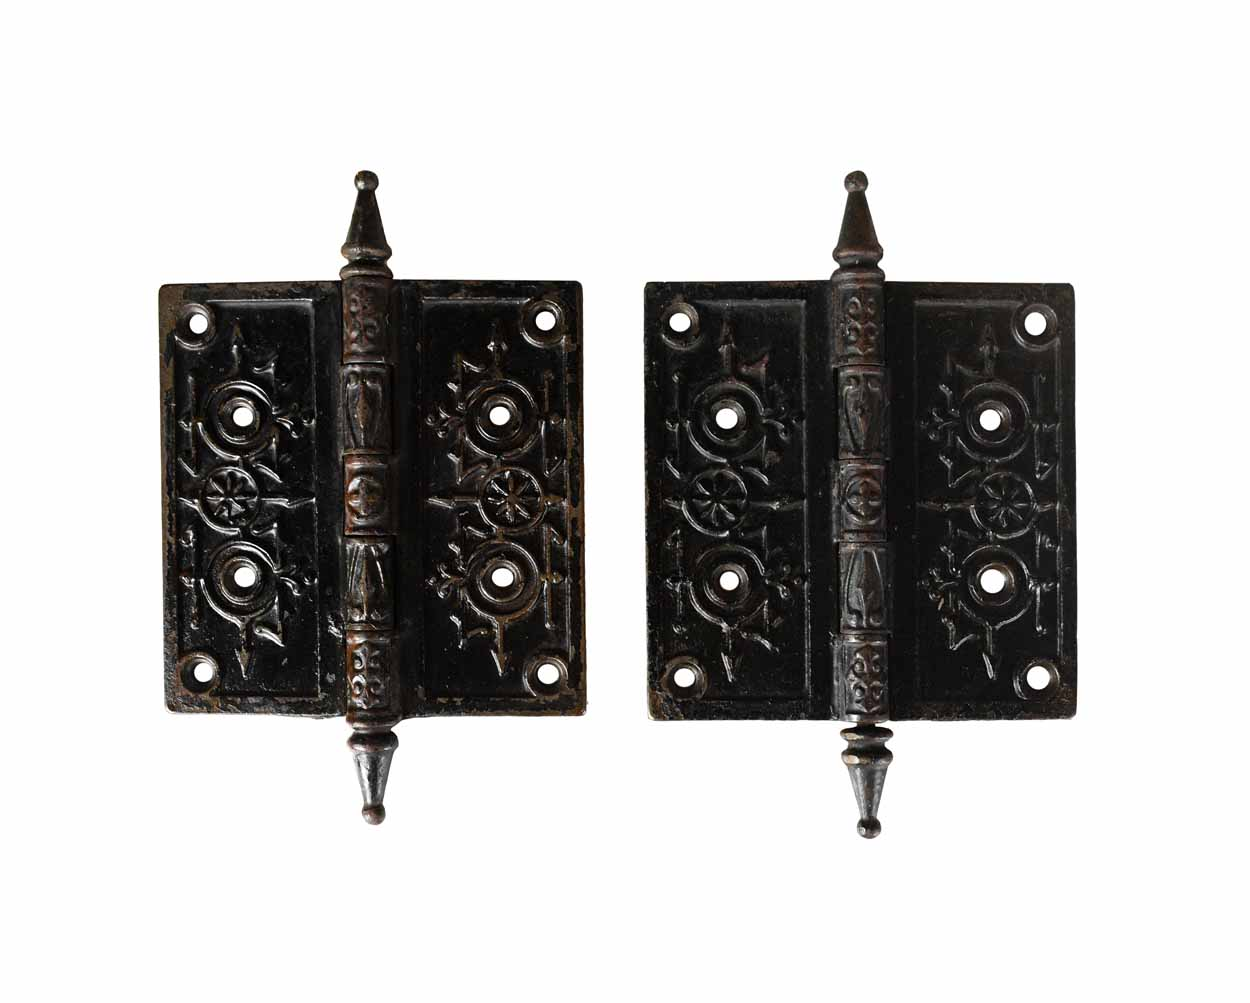 LARGE VICTORIAN HINGE PAIR AA# 43887   1 pair available $195.00 for pair